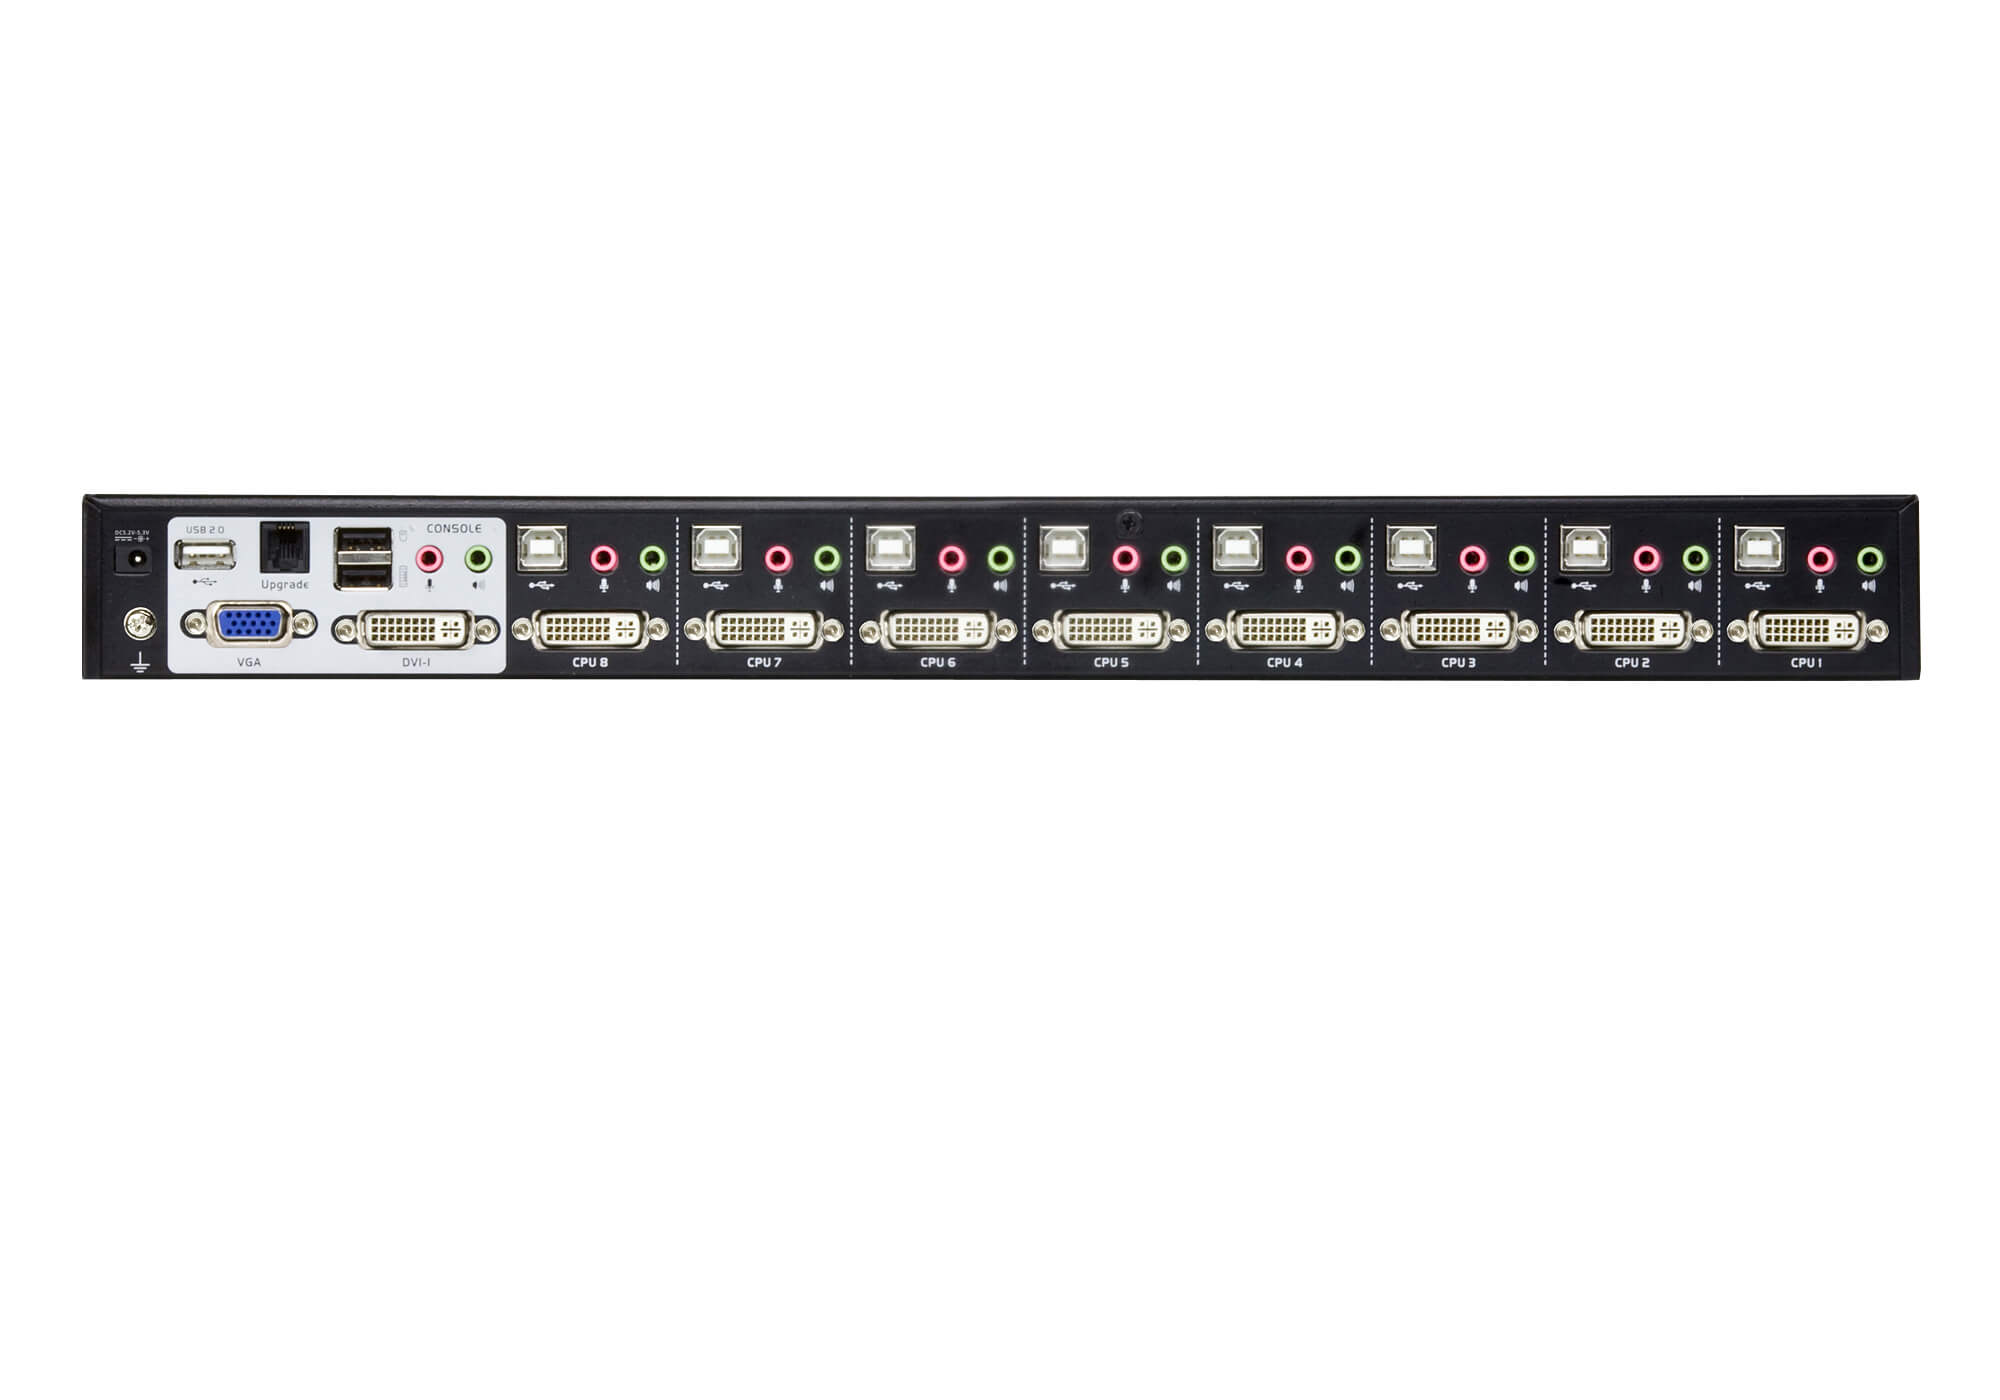 8-Port-USB-DVI-Dual-Link/Audio-KVM-Switch-2